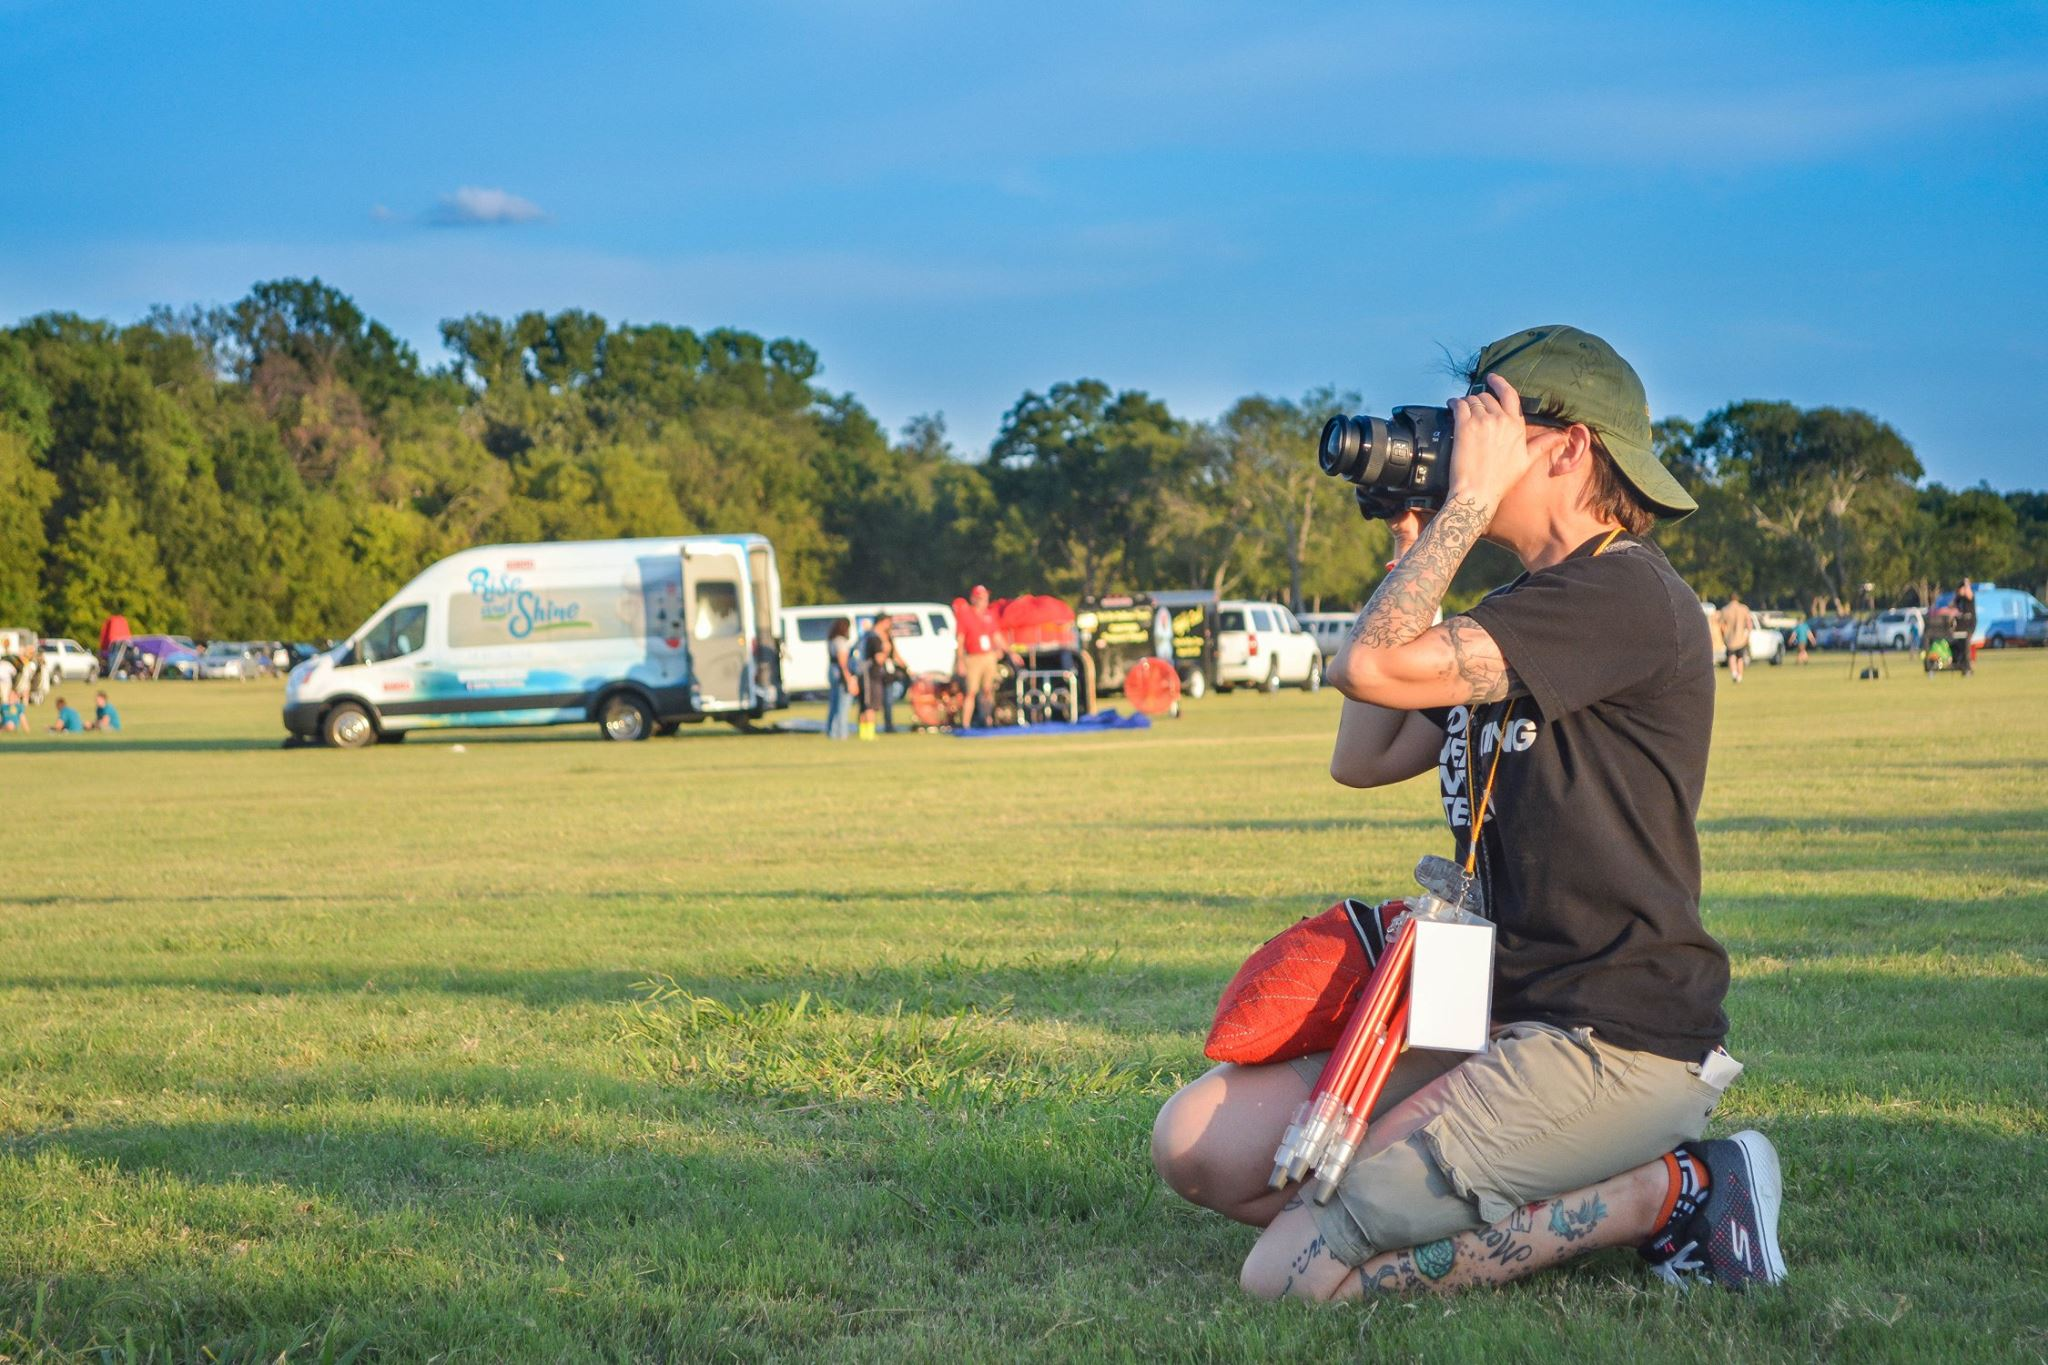 Photographing the Plano Balloon Festival